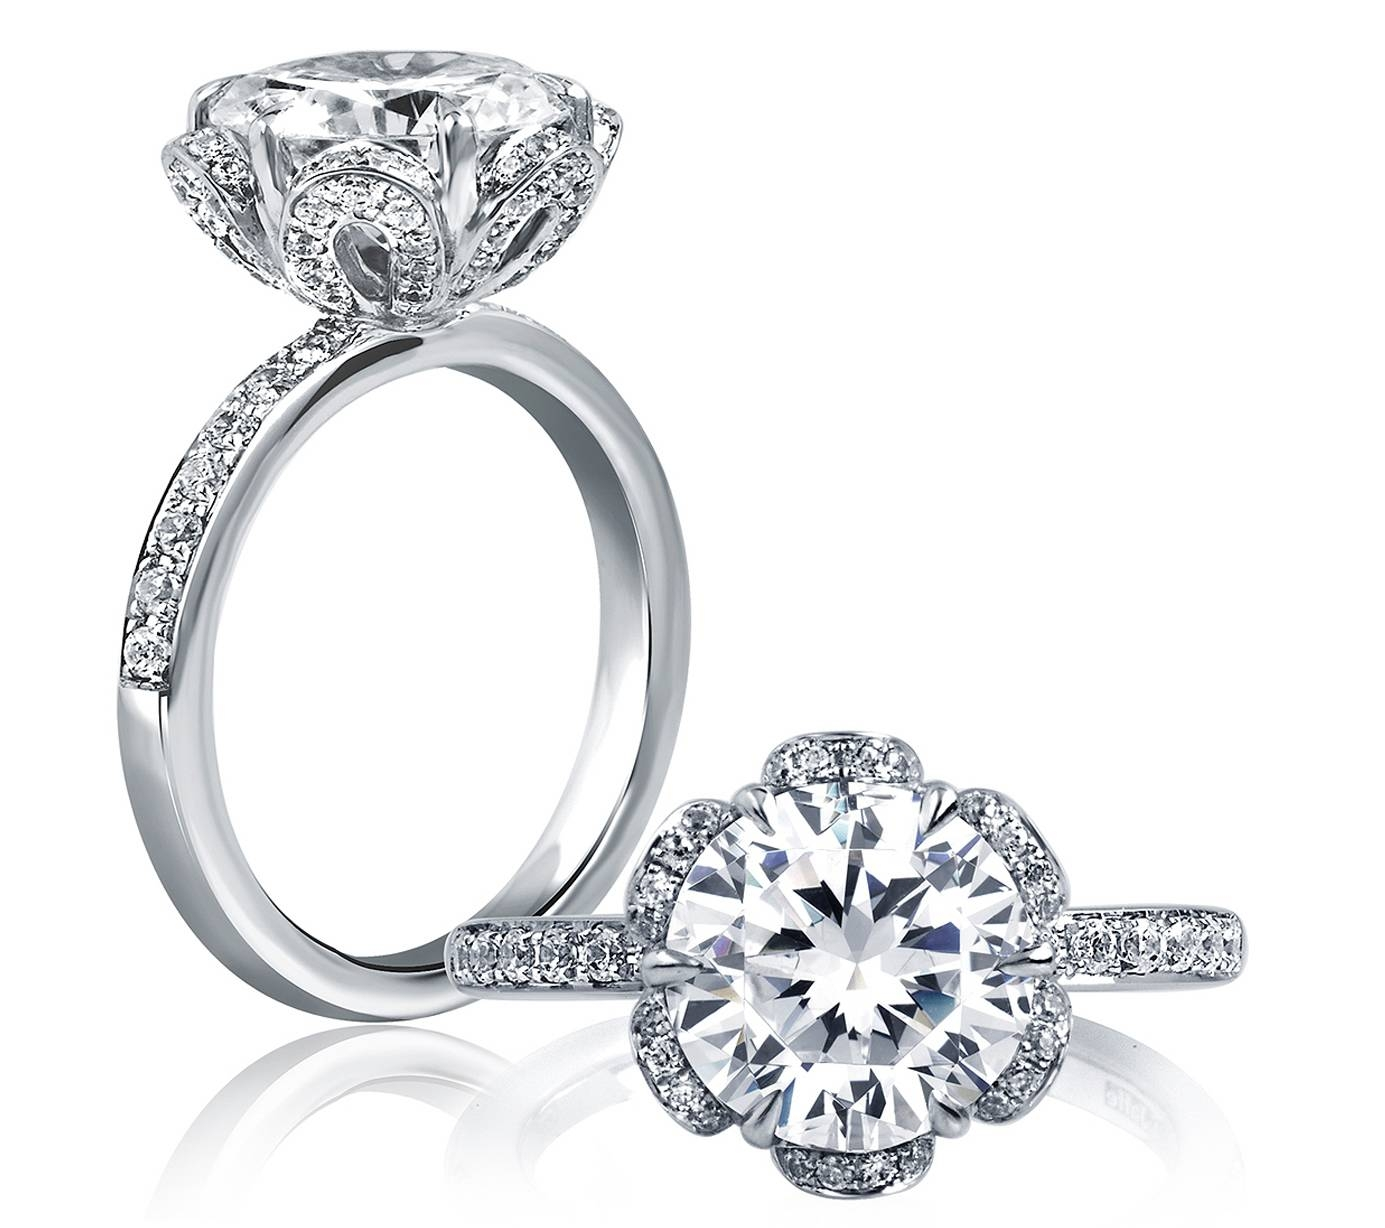 Engagement Rings | Product Categories | Bolenz Within Designing An Engagement Rings (View 9 of 15)